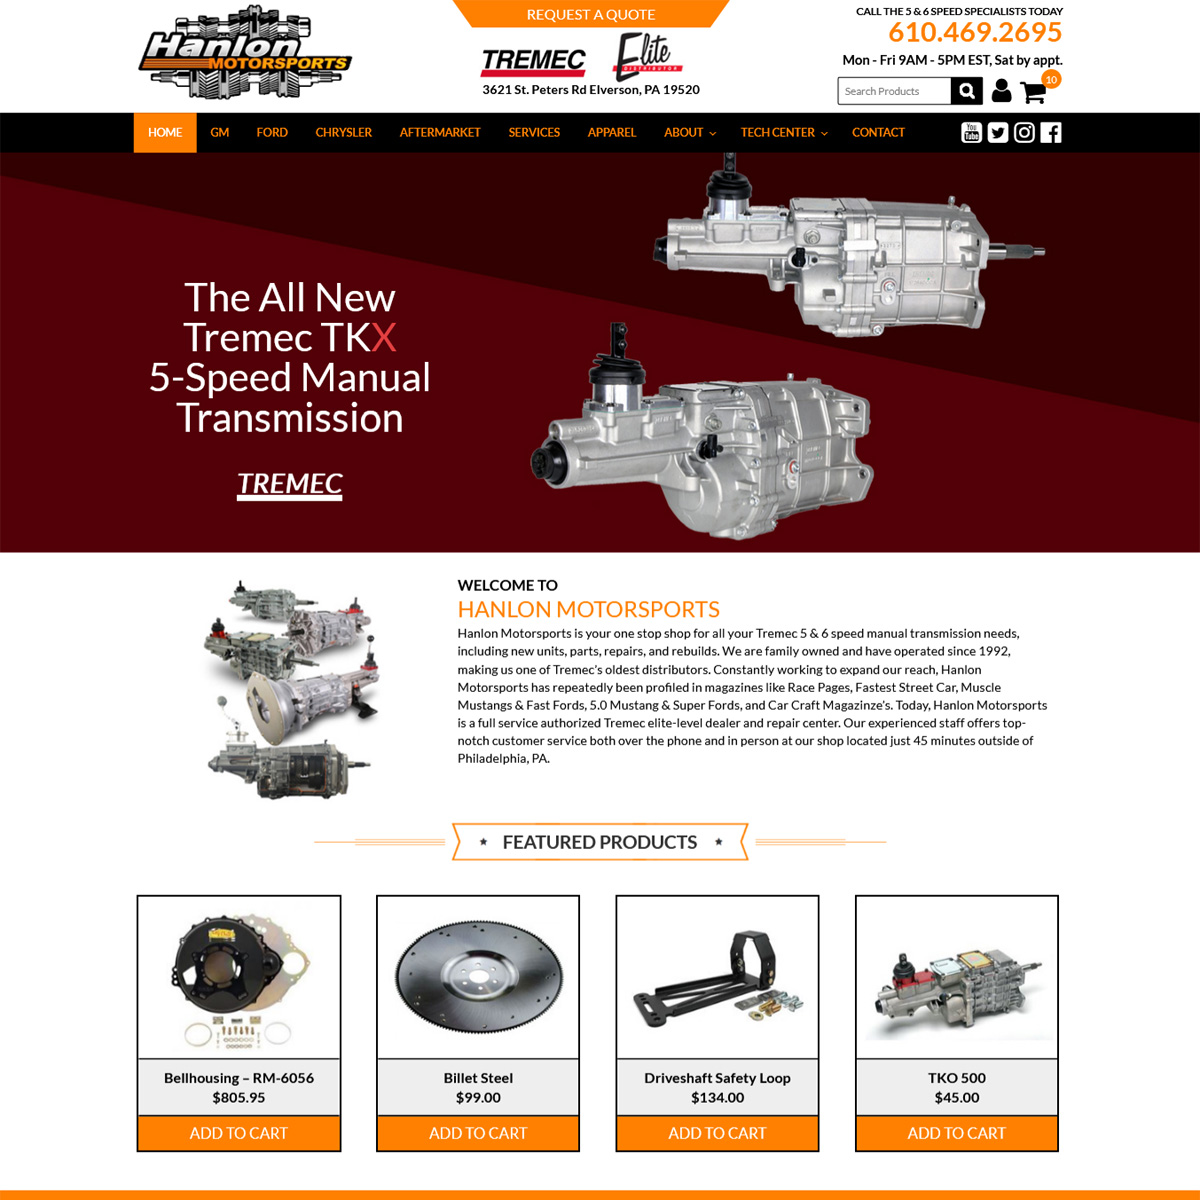 Hanlon Motorsports Website Design